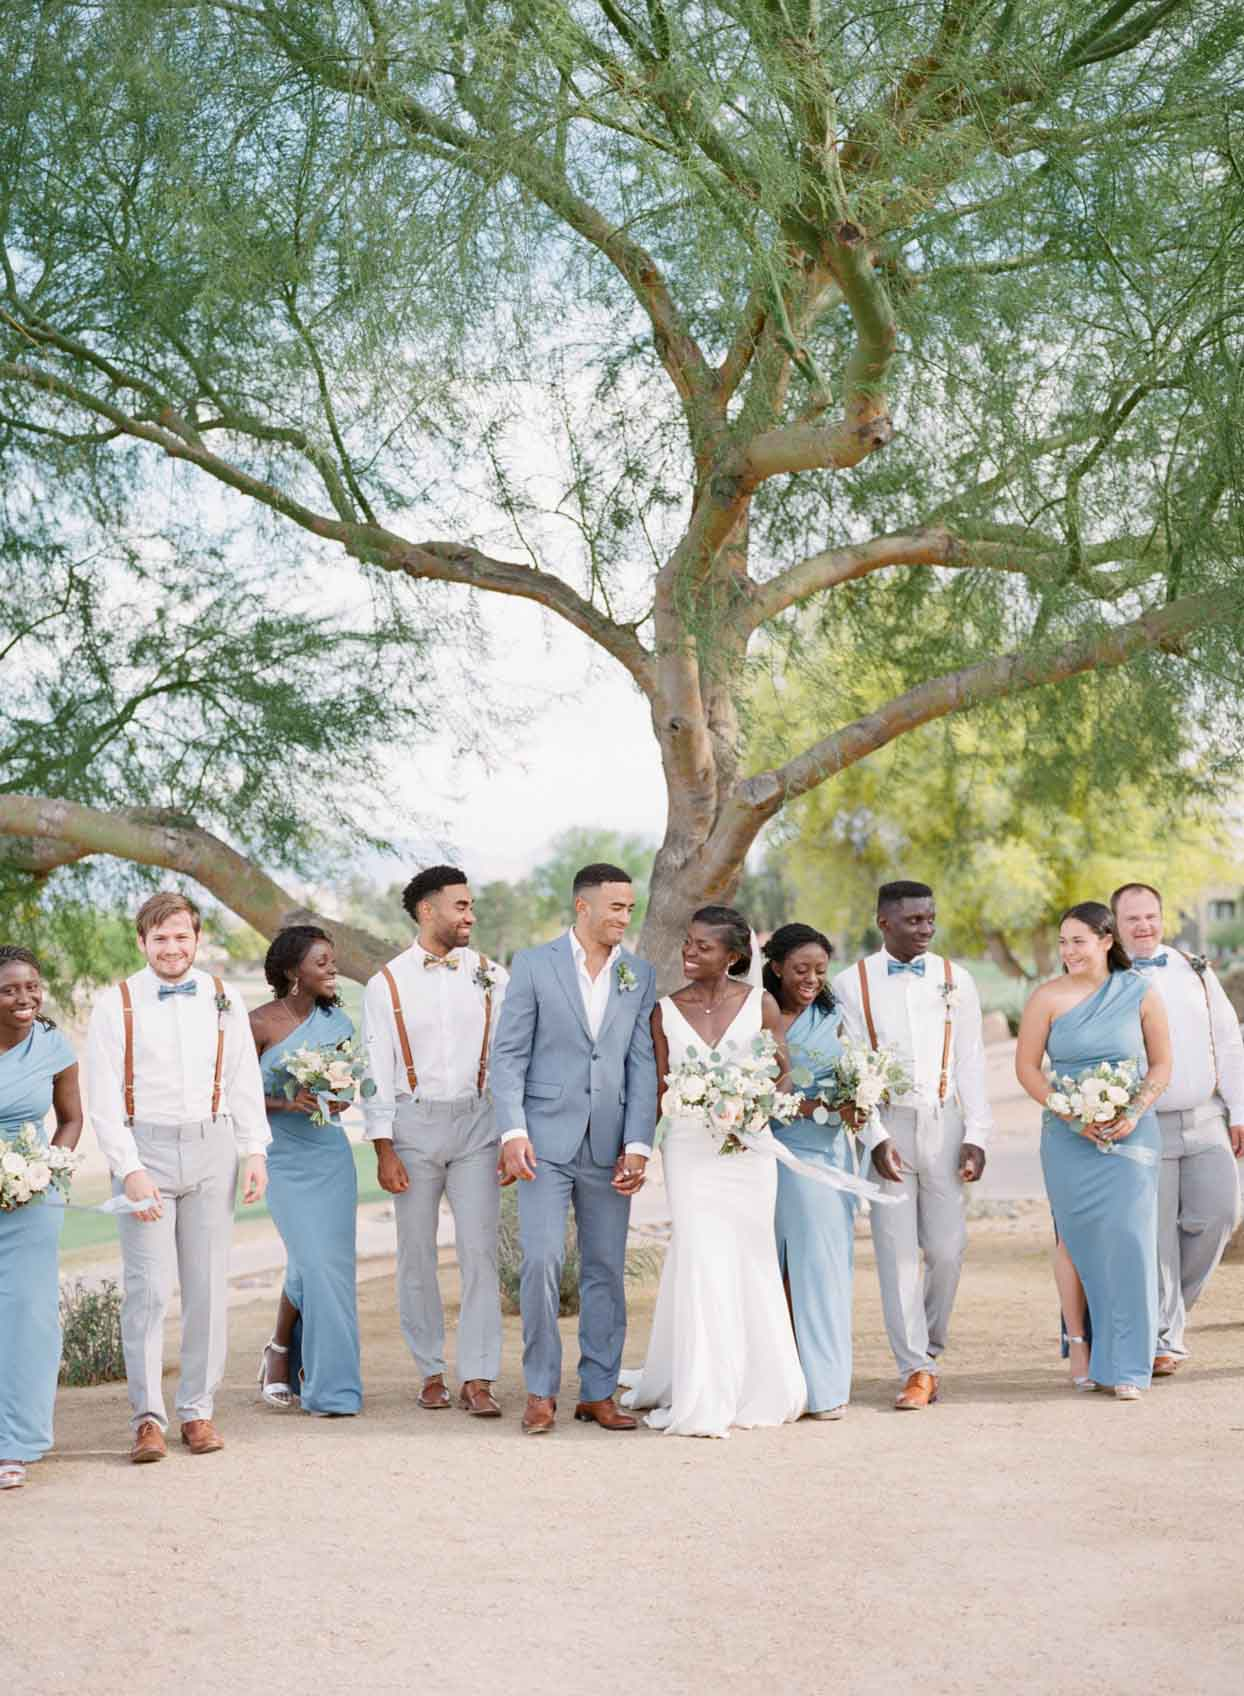 Charming Wedding Party Walks Across The Desert Grounds at Palm Valley in Goodyear, AZ